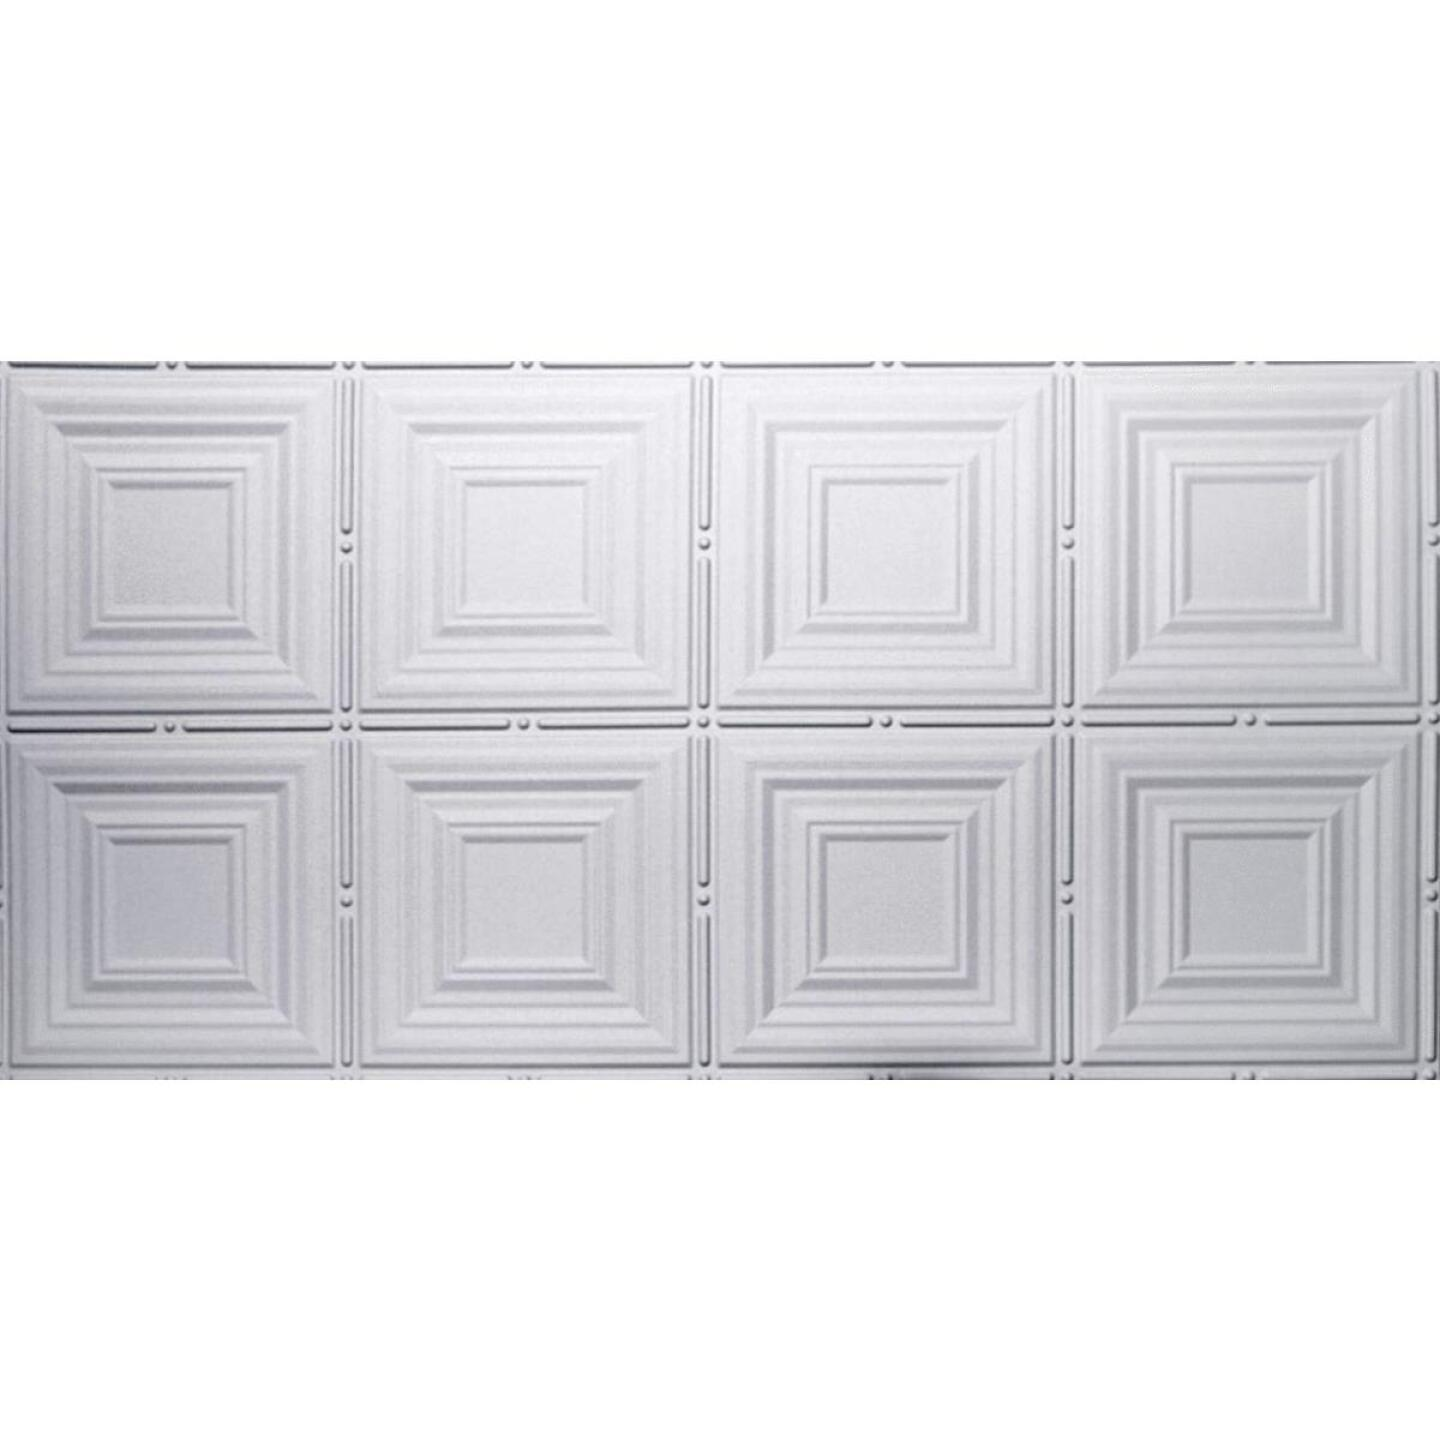 Dimensions 2 Ft. x 4 Ft. White 12 In. Square Pattern Tin Look Nonsuspended Ceiling Tile & Backsplash Image 1